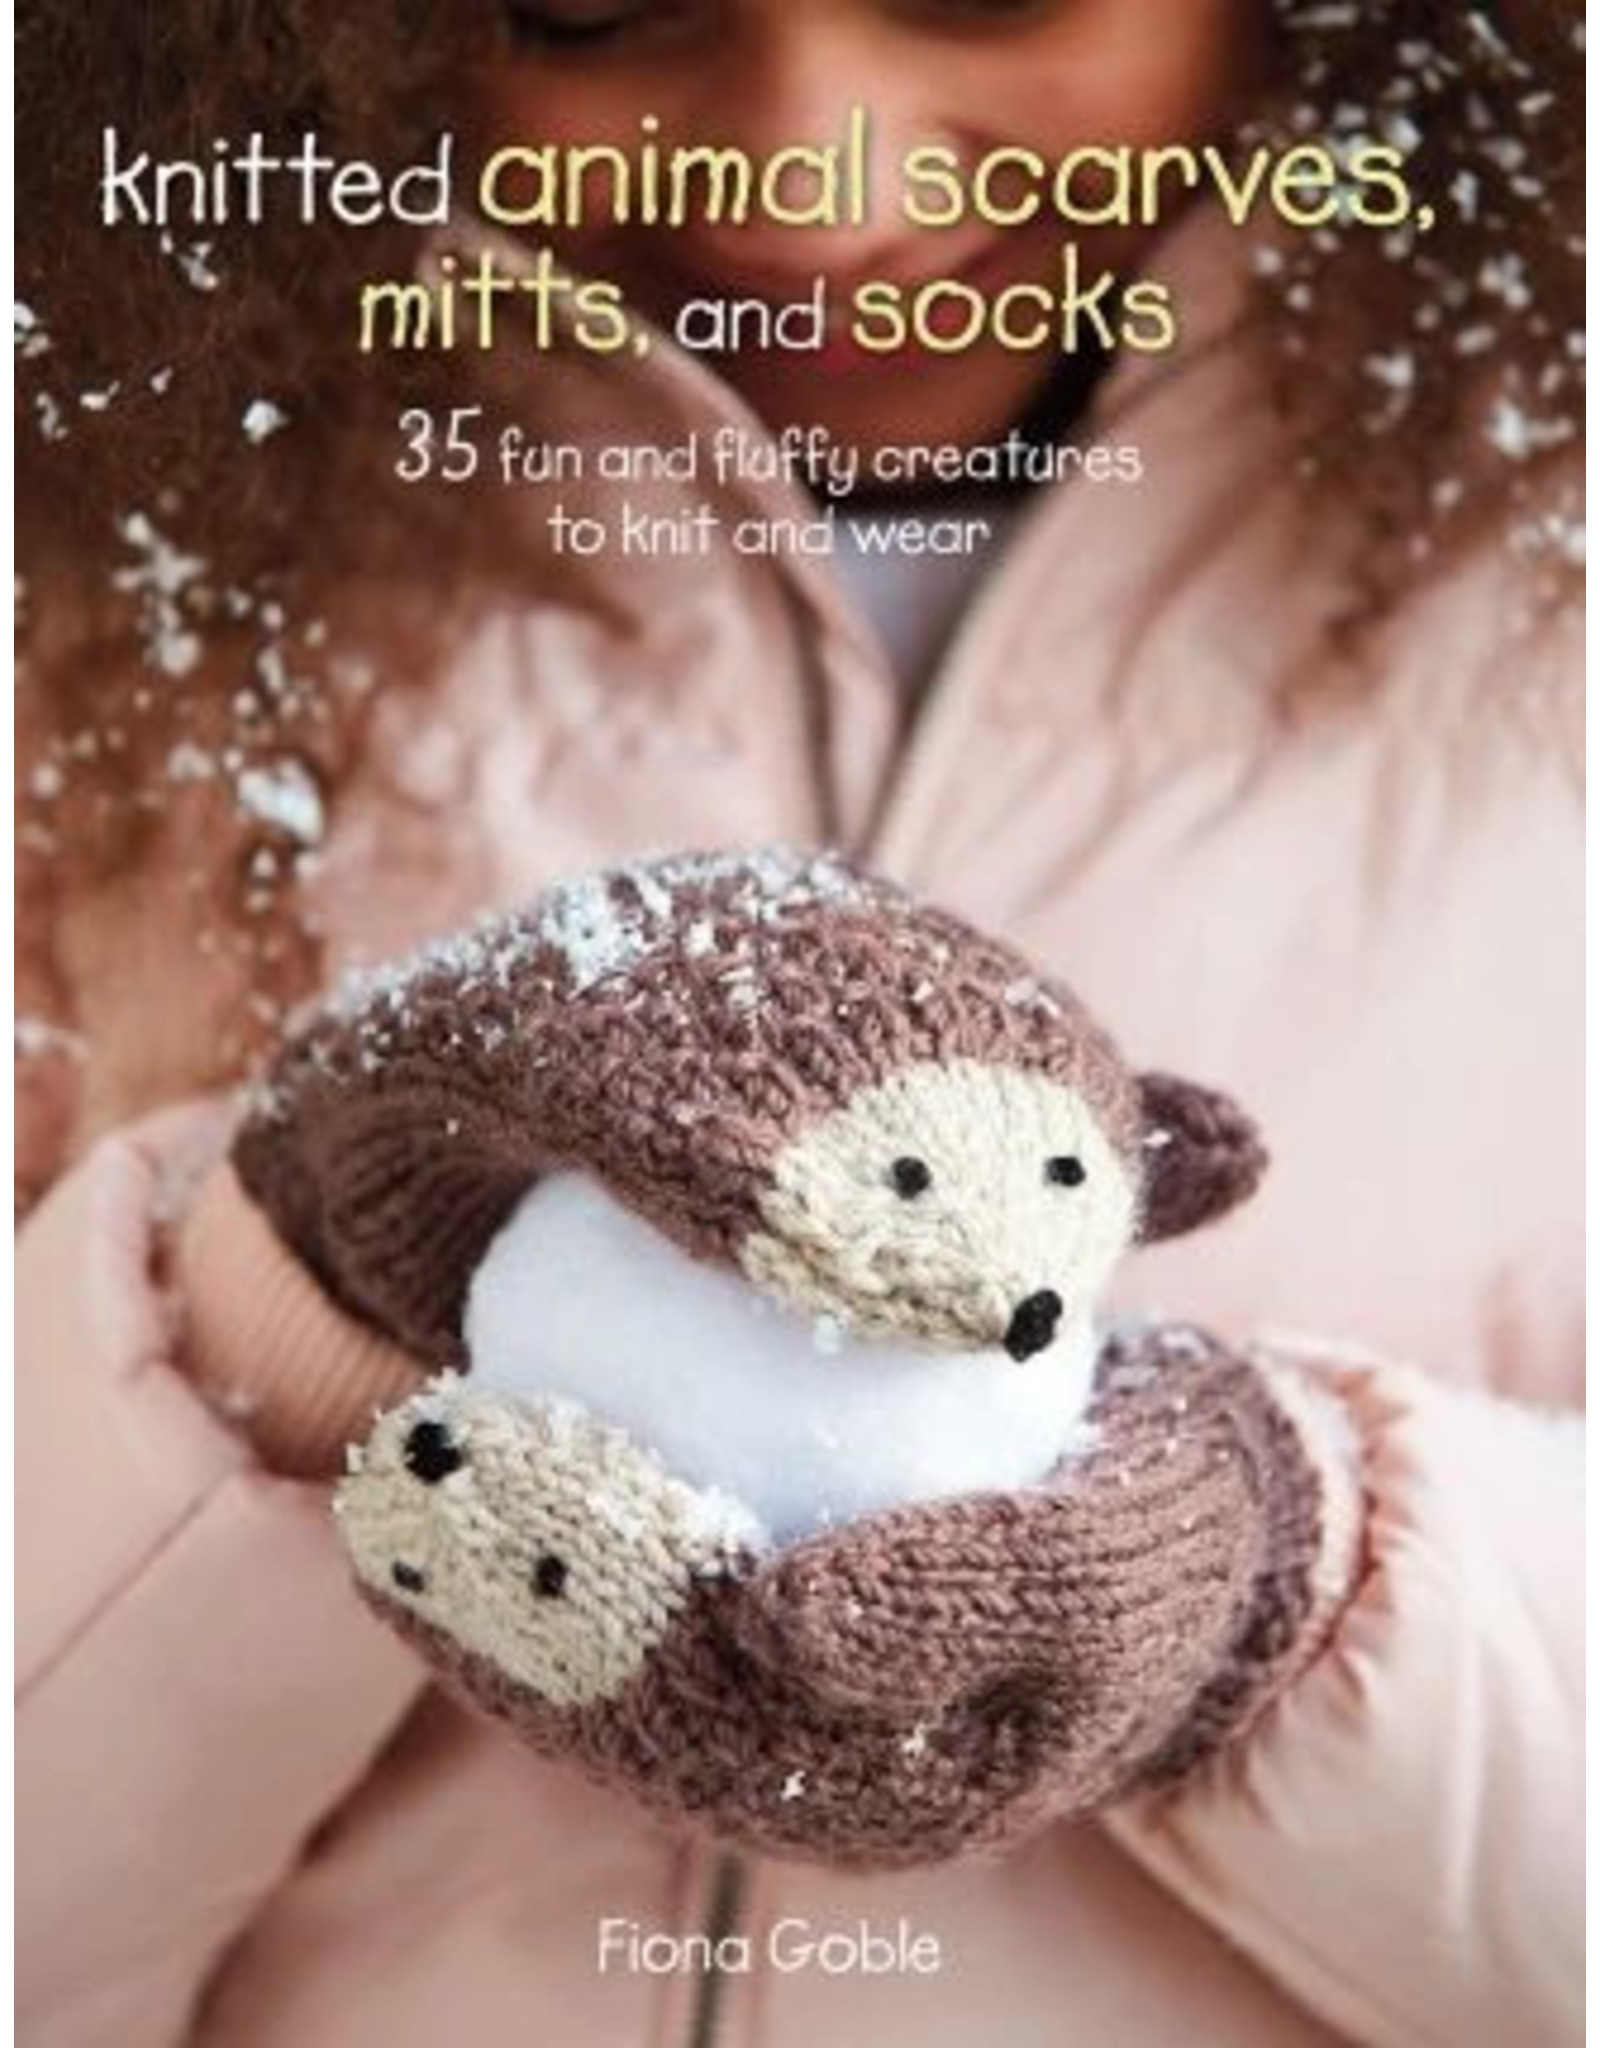 Fiona Goble Knitted Animal Scarves, Mitts, and Socks by Fiona Goble